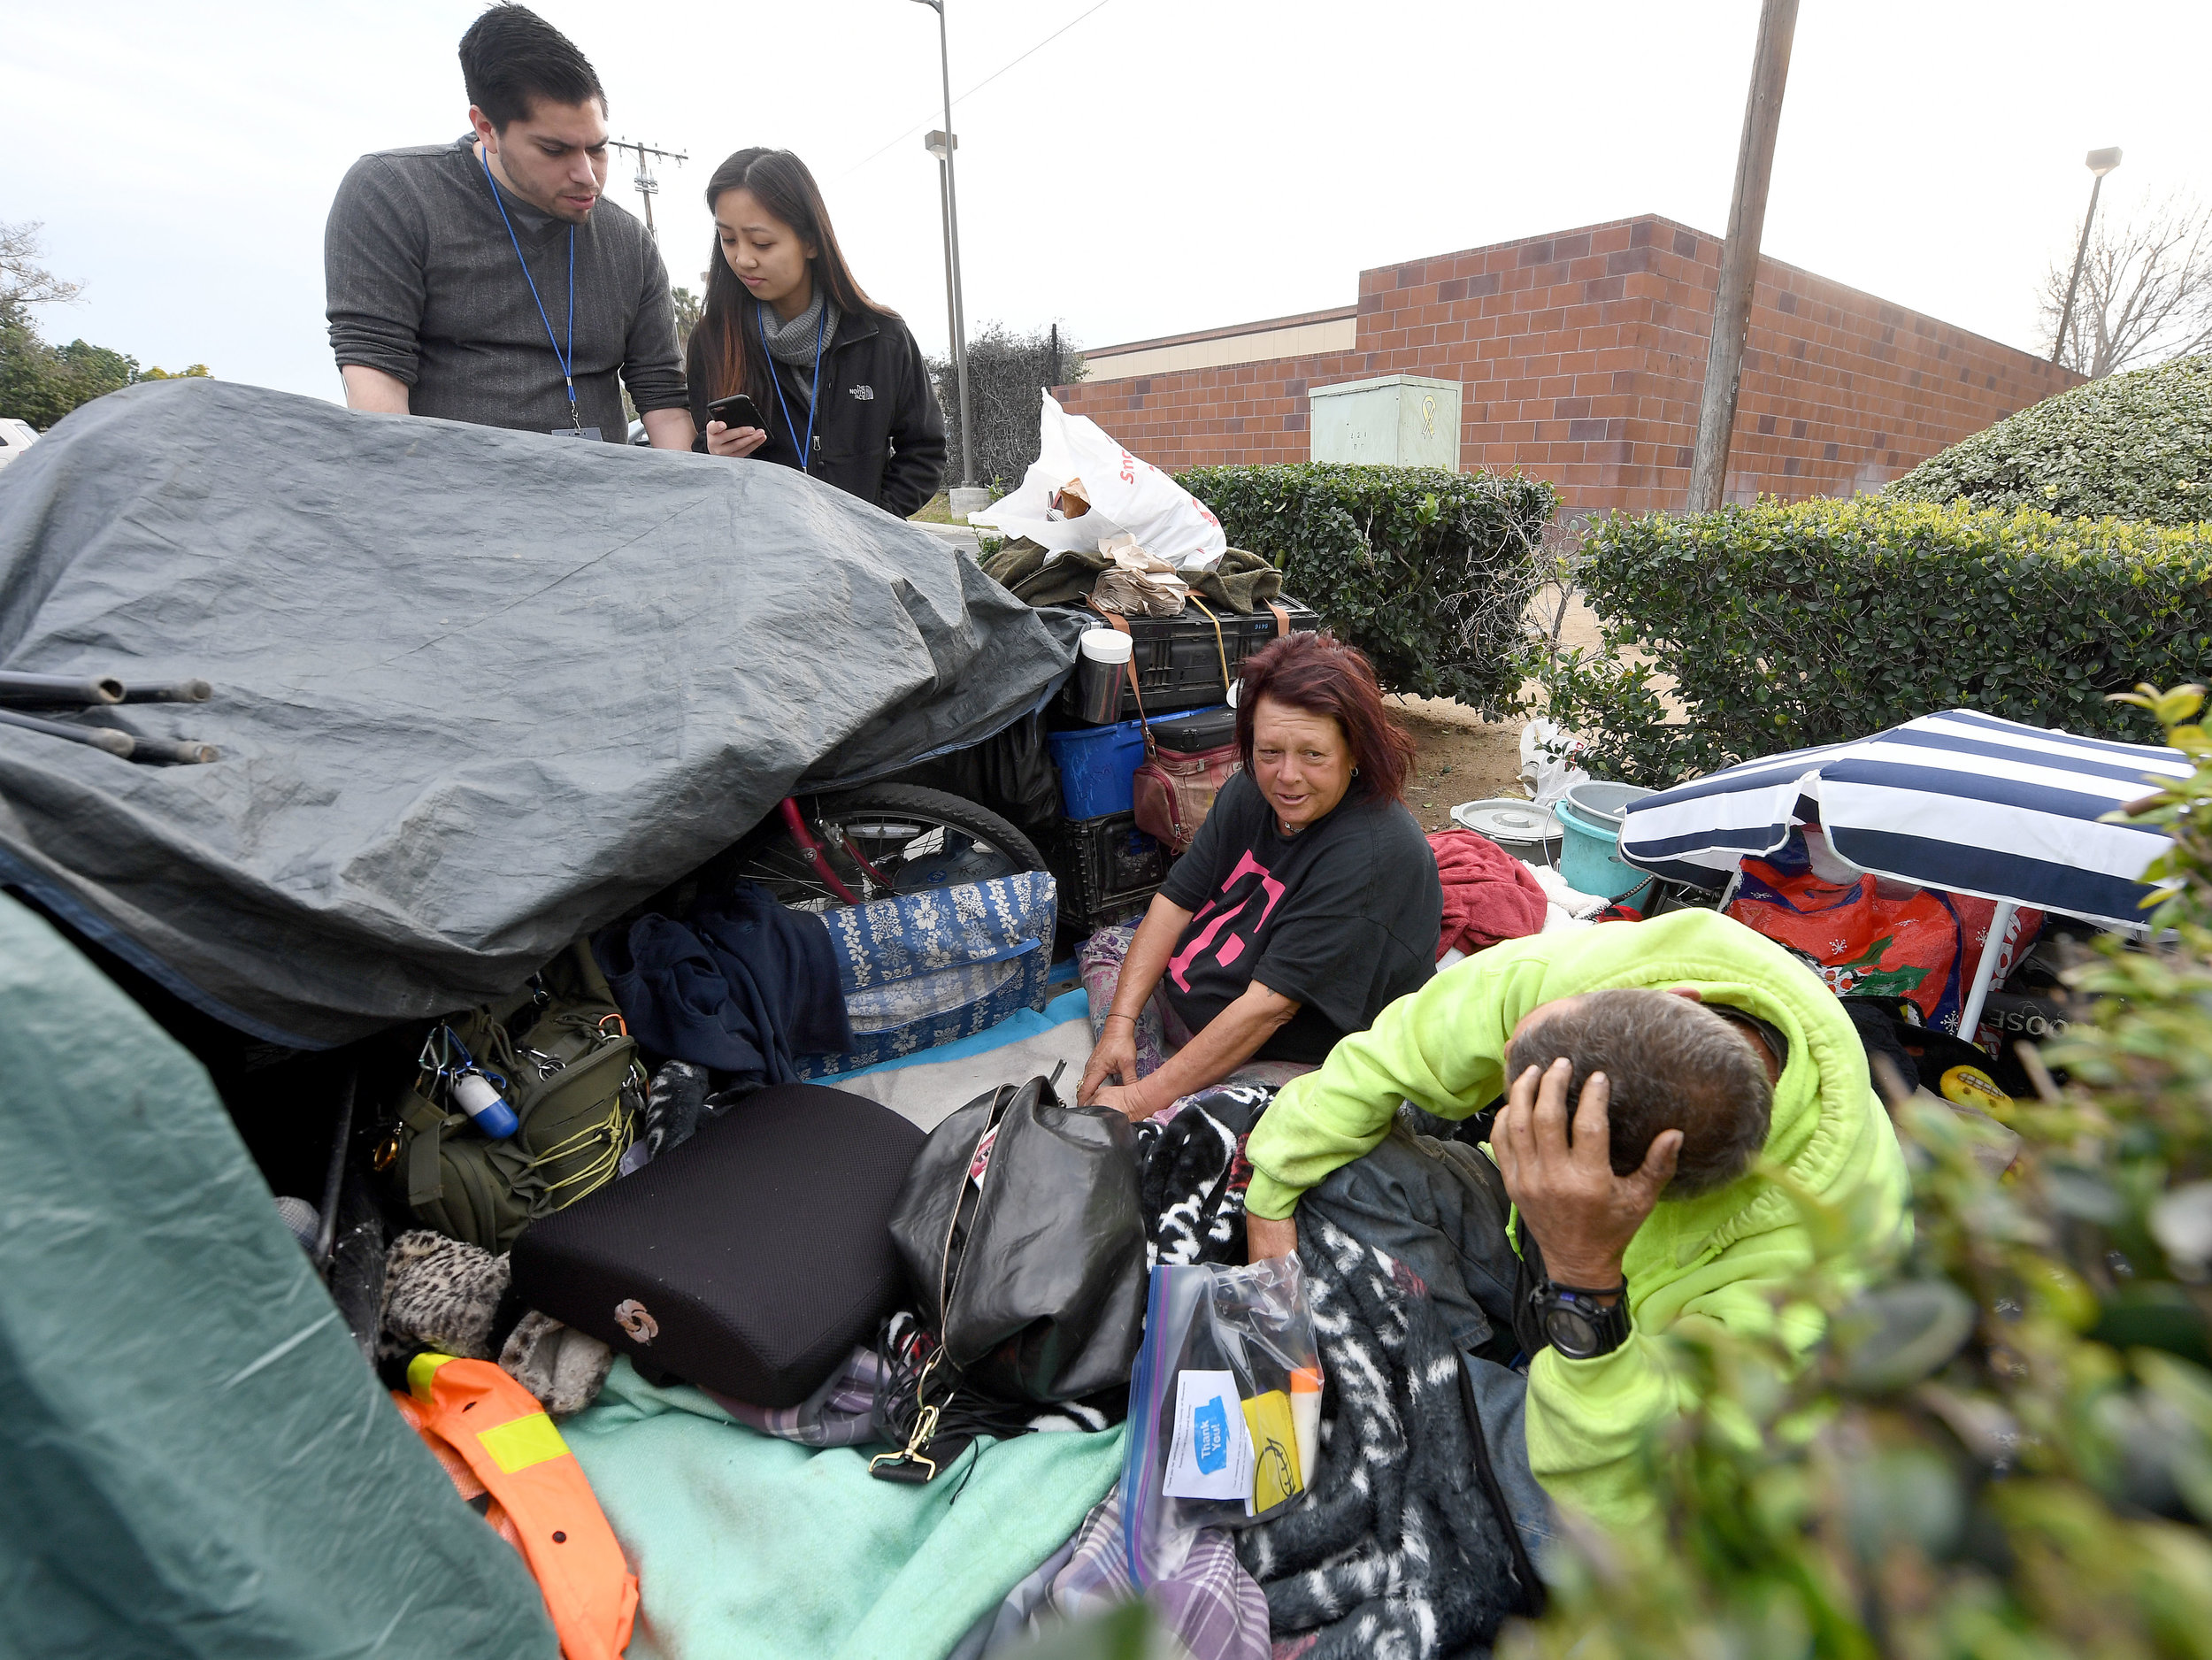 UCR medical students Josue Reynaga and Betty Nguyen, gather information from Annette Alonzo, 53, and William Robinett, 53, from their overnight camp in a parking lot near the intersection of Tyler and Hole streets during the 2019 Point-in-Time Homeless Count and Survey in Riverside Tuesday morning, January 29, 2019. Over 700 volunteers took part in the county wide count using a specially designed phone app to gather information from individuals.